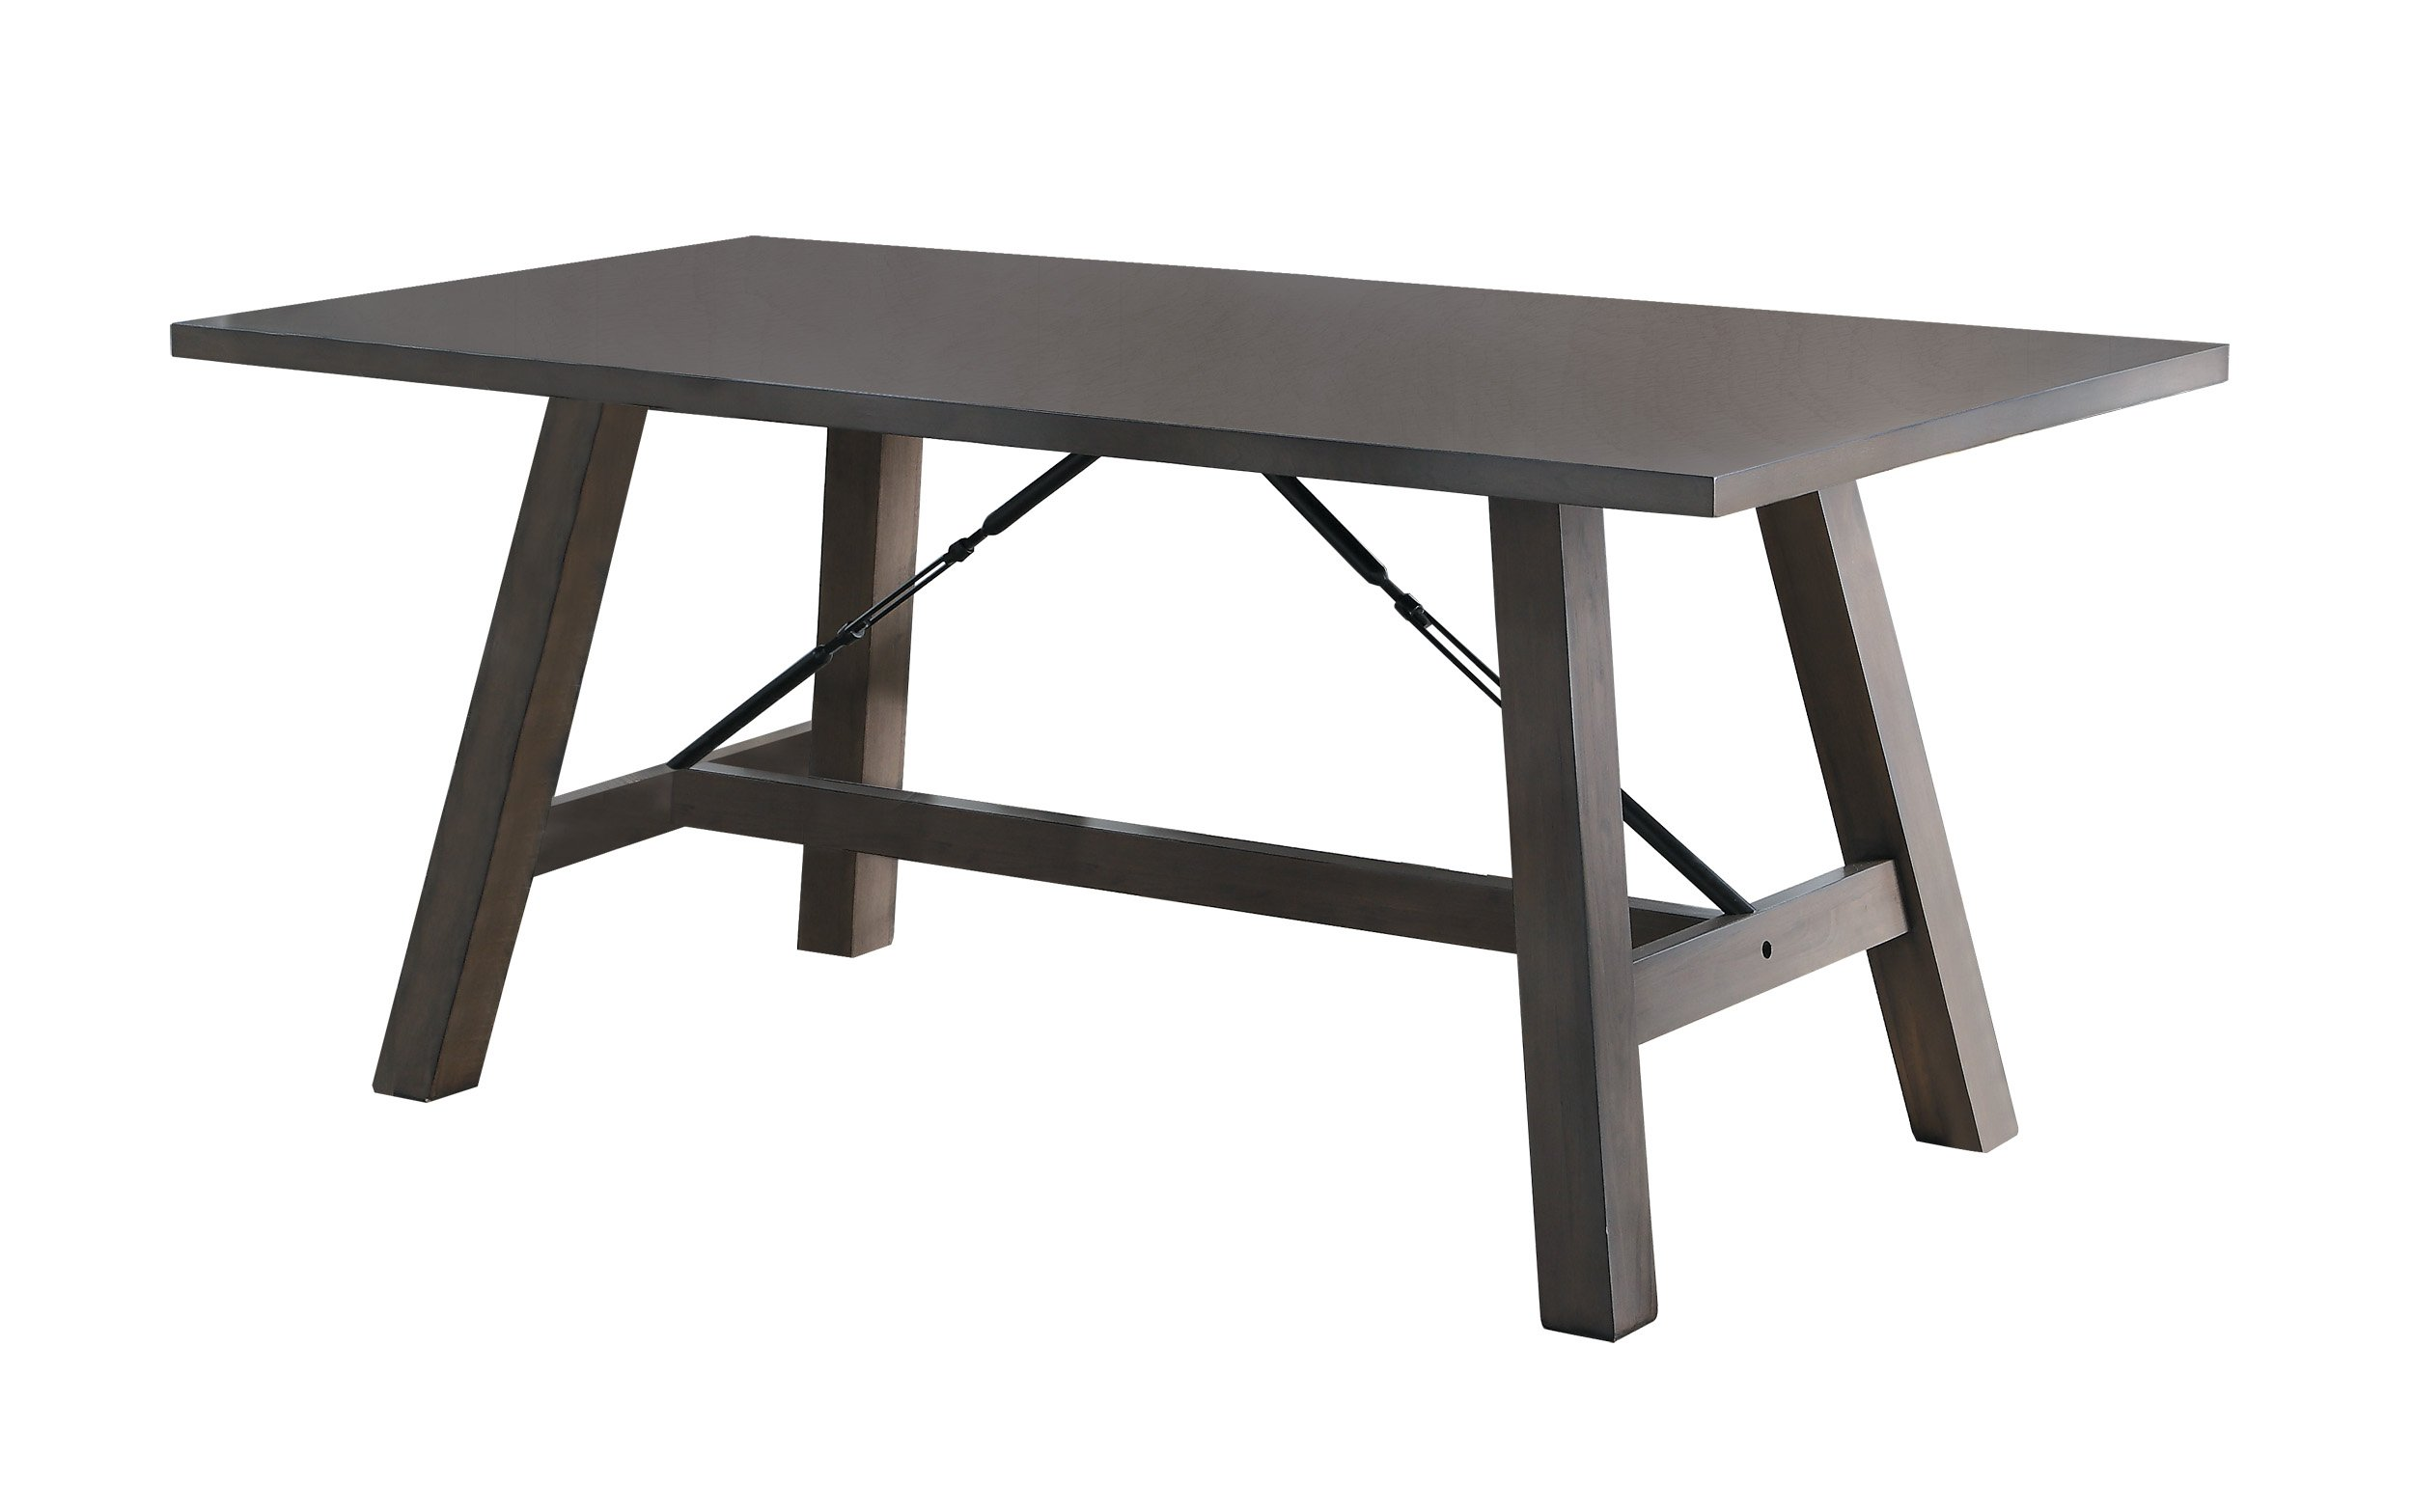 Homelegance Seaford Dining Table Industrial Style, Gray